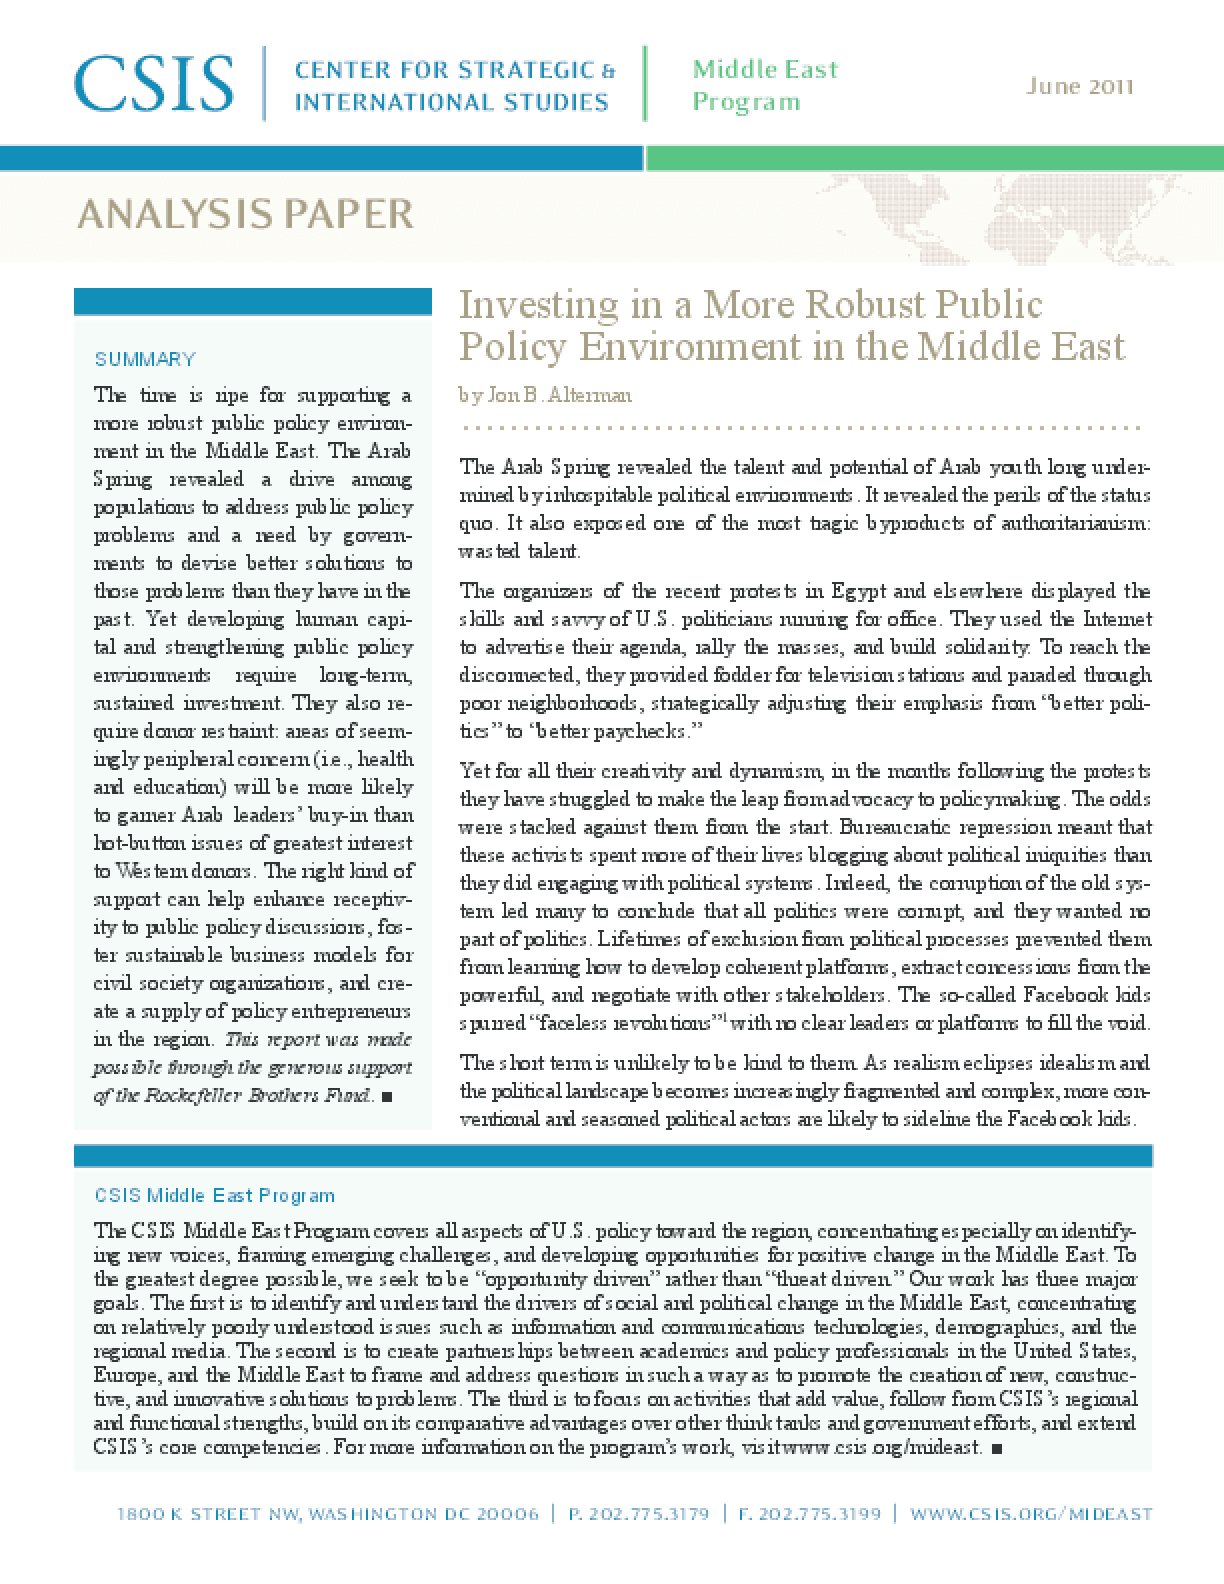 Investing in a More Robust Public Policy Environment in the Middle East